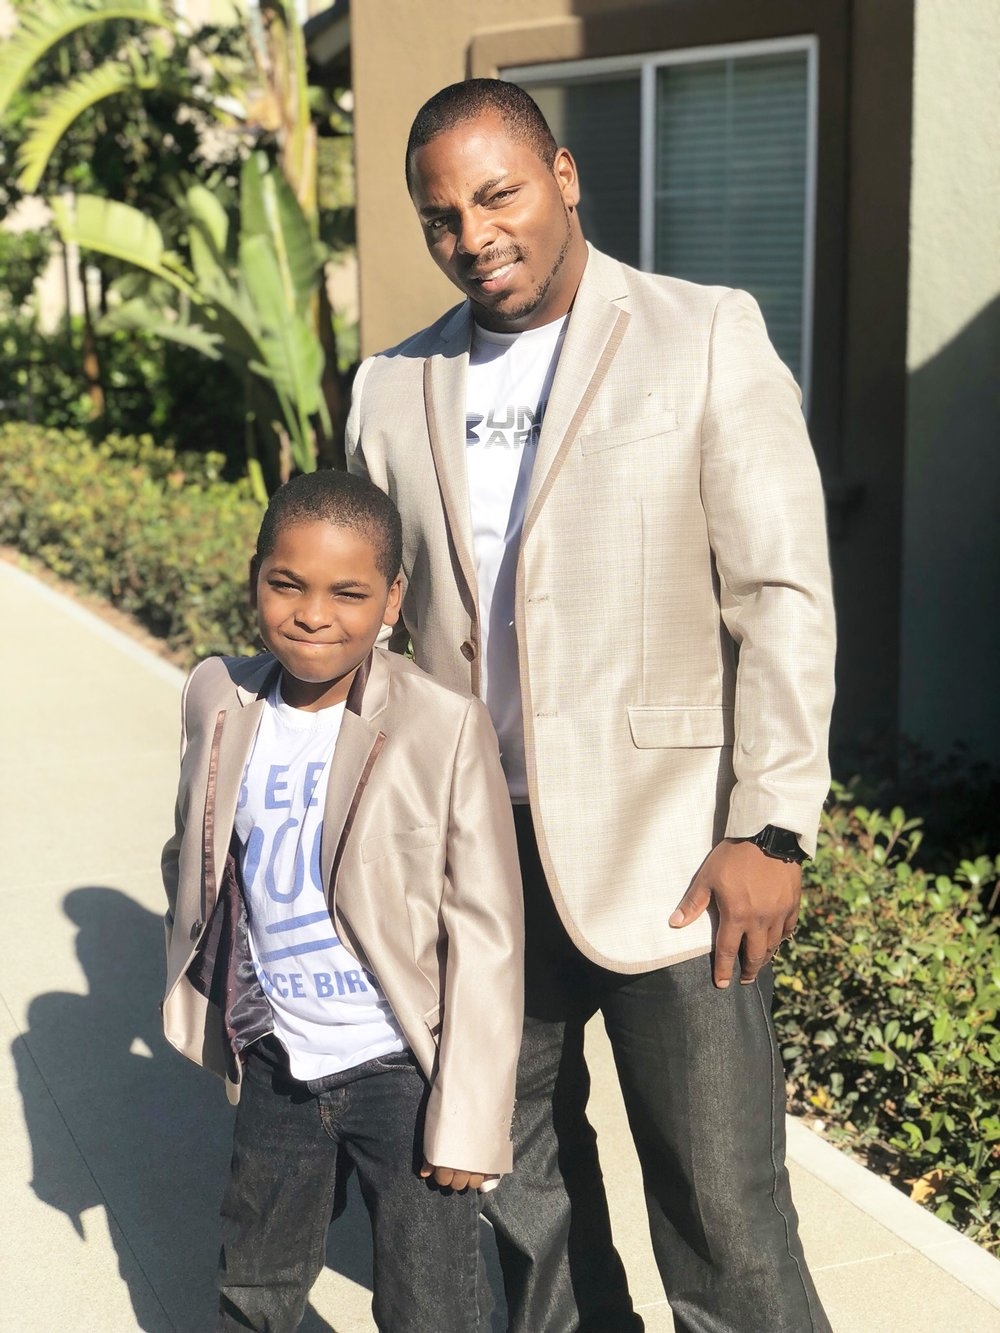 Dad and Elijah - Went Suit shopping this past weekend. We tried to compromise here in these photos because California heat was a bit disrespectful on this day. LOL!